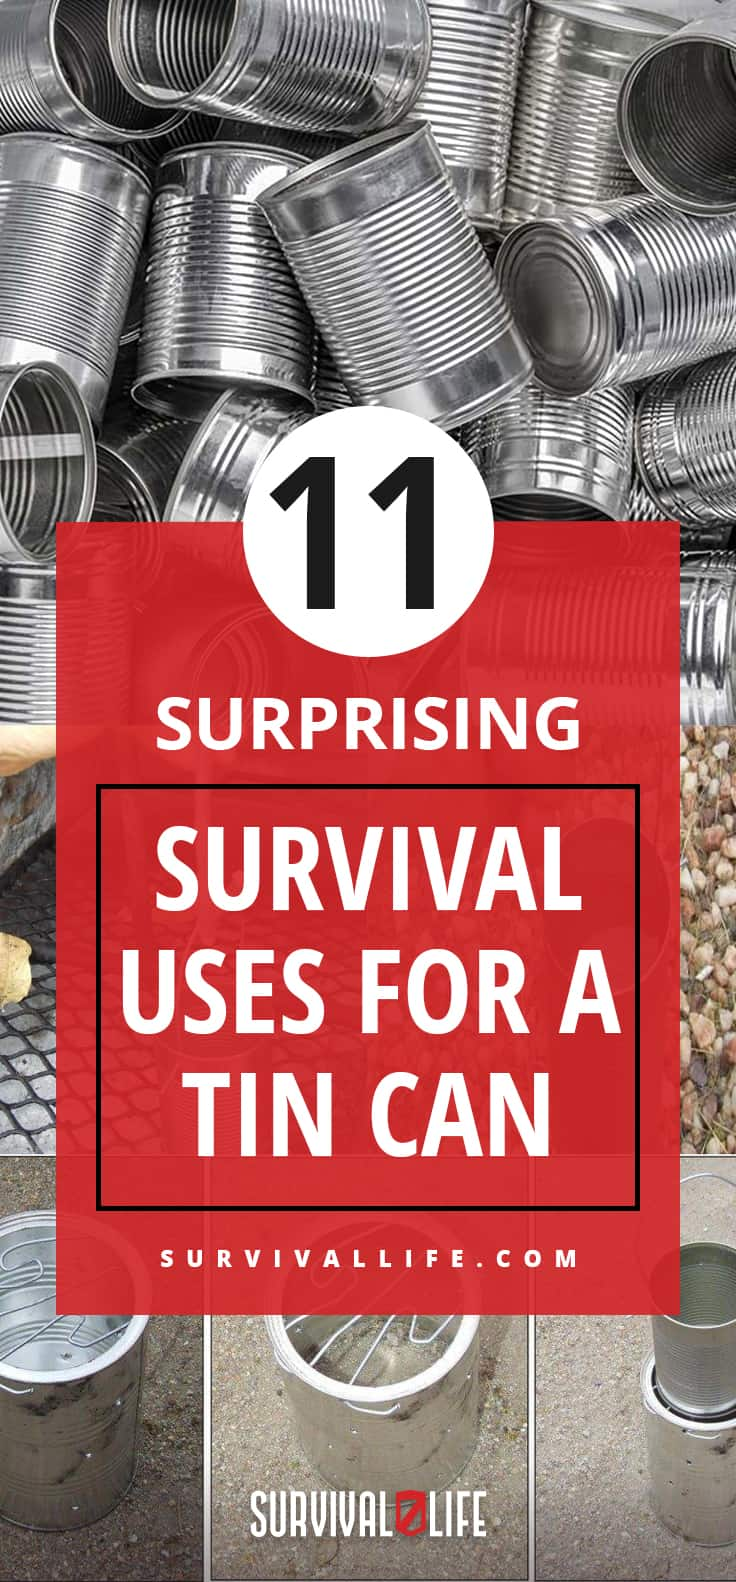 Surprising Survival Uses For A Tin Can | http://survivallife.com/survival-uses-for-tin-can/